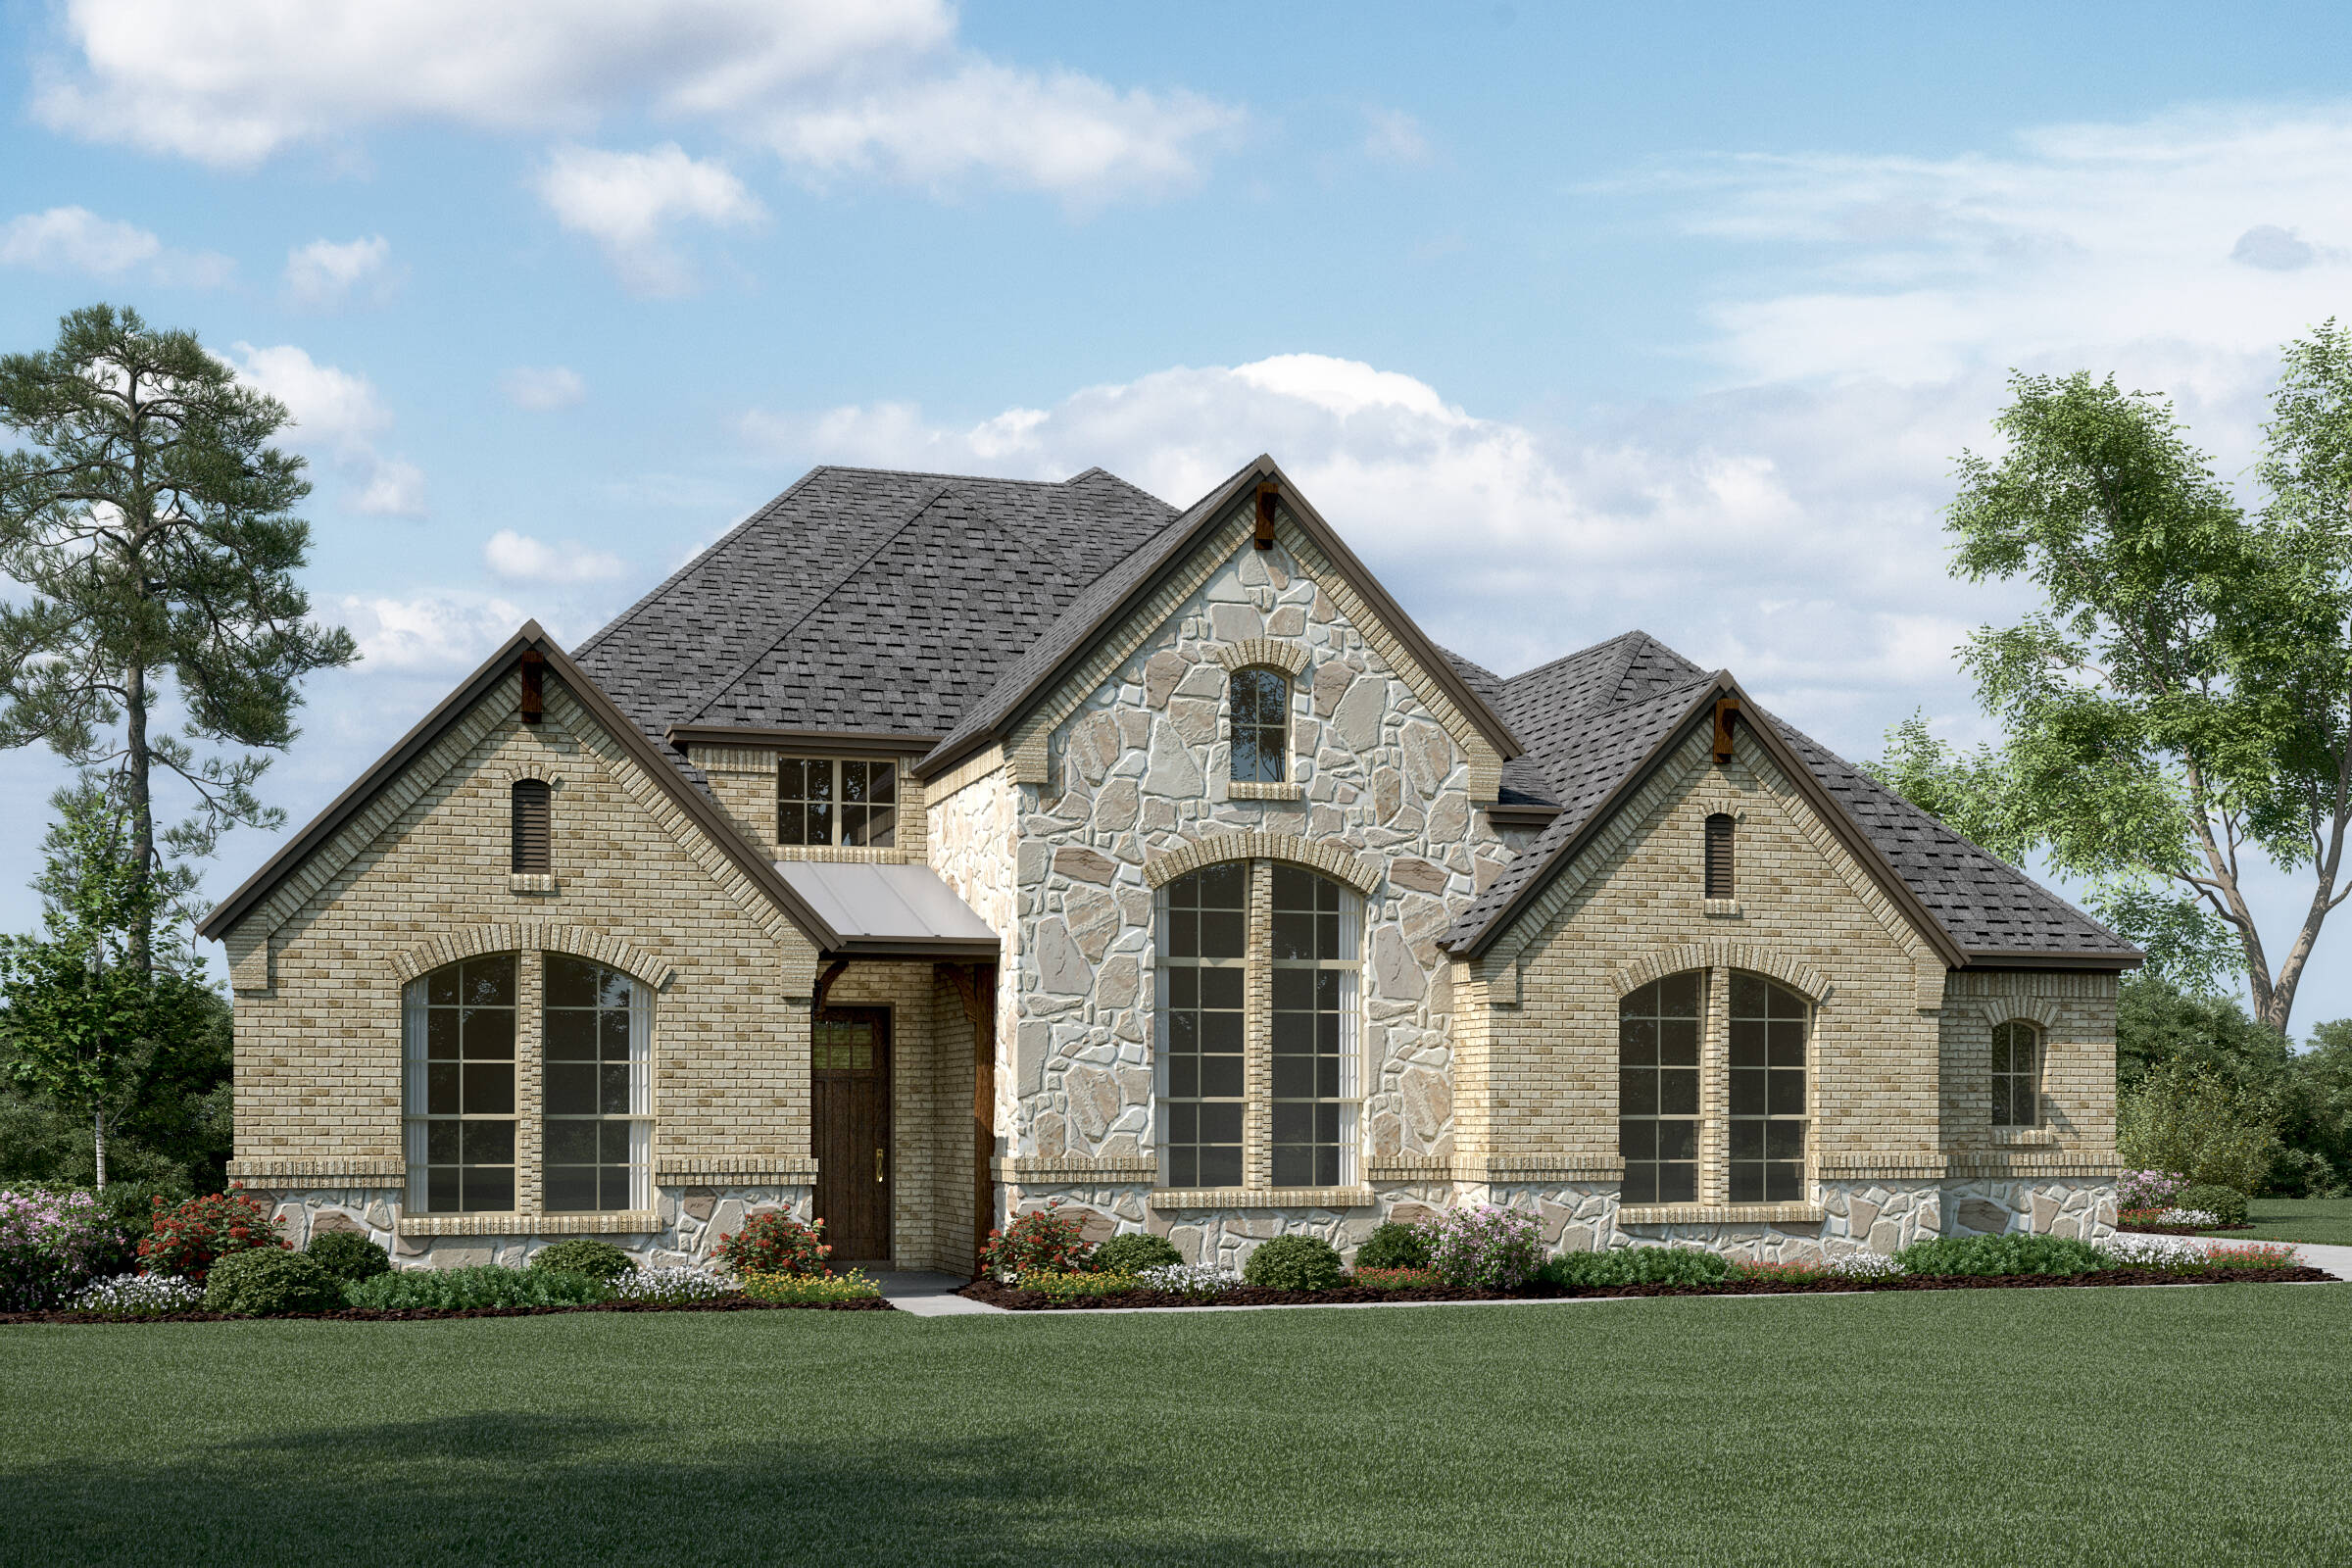 Hartford L Stone new homes dallas tx